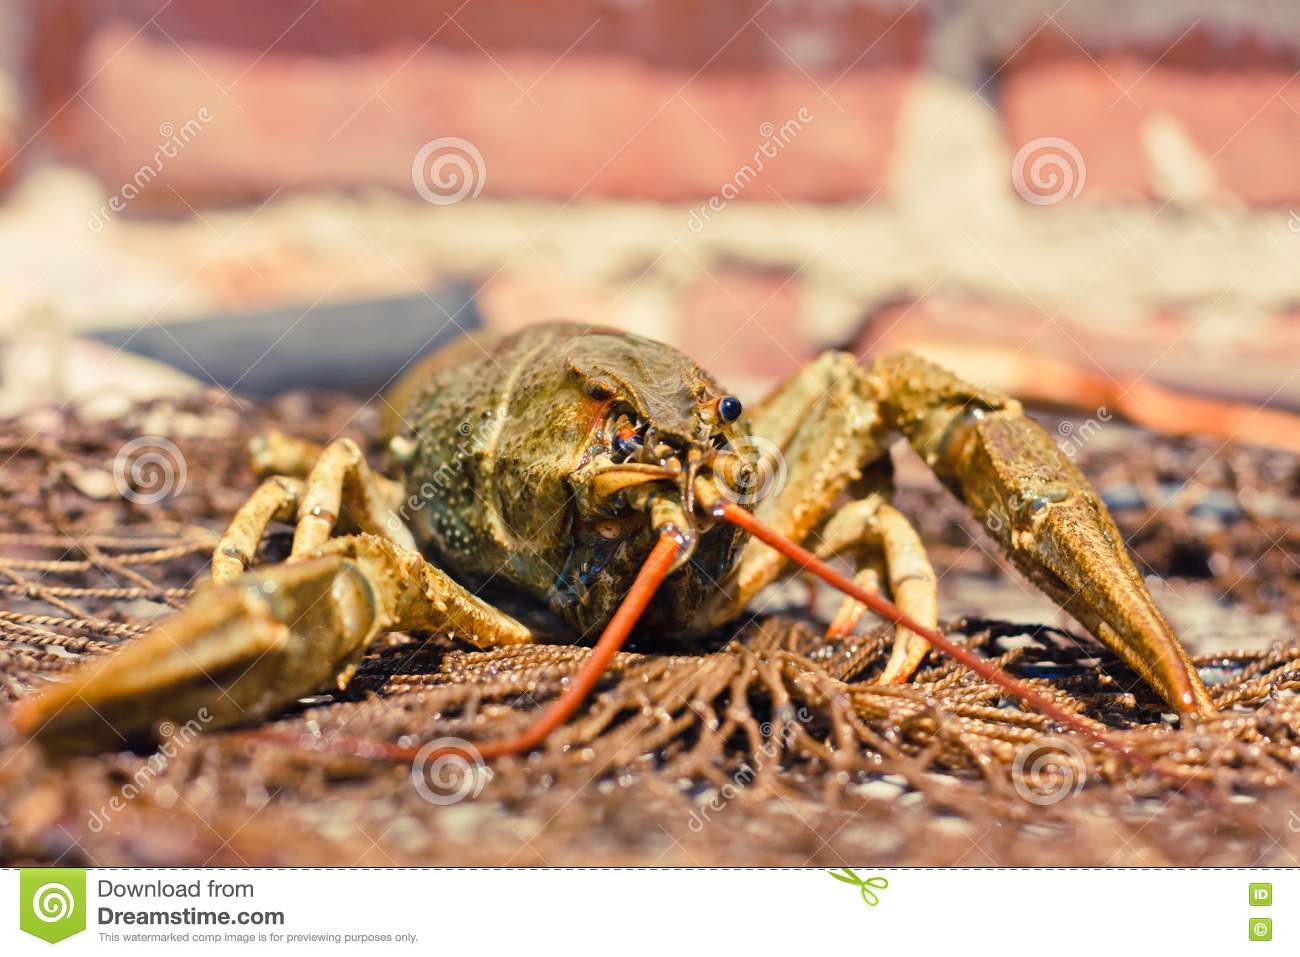 The crawfish in fishing network royalty free stock photos for Fishing with crawfish